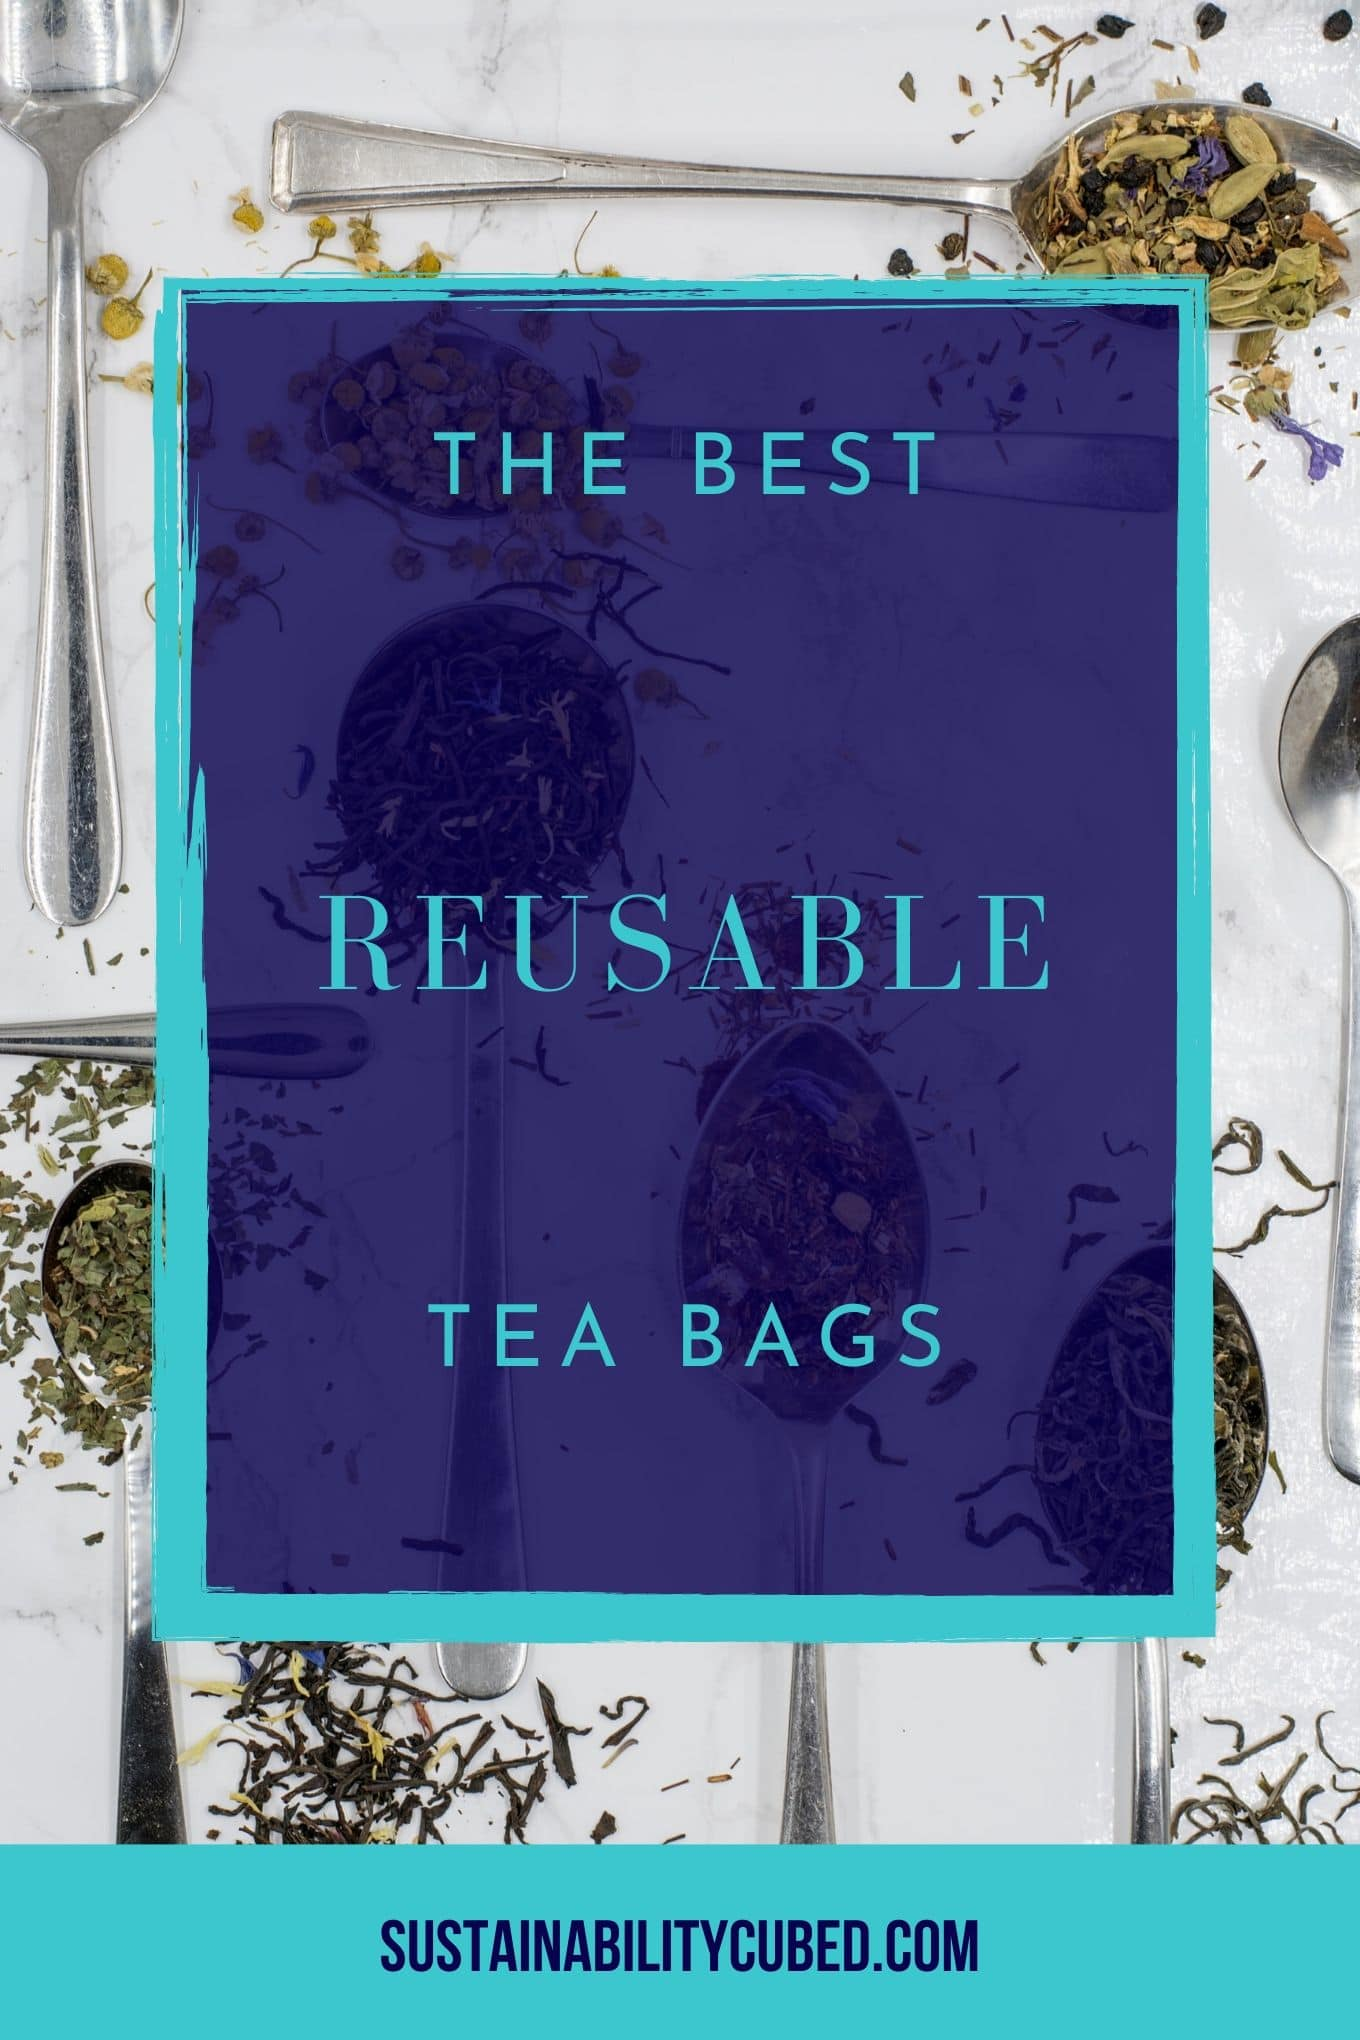 Reusable Tea Bags: Buy or Make Your Own